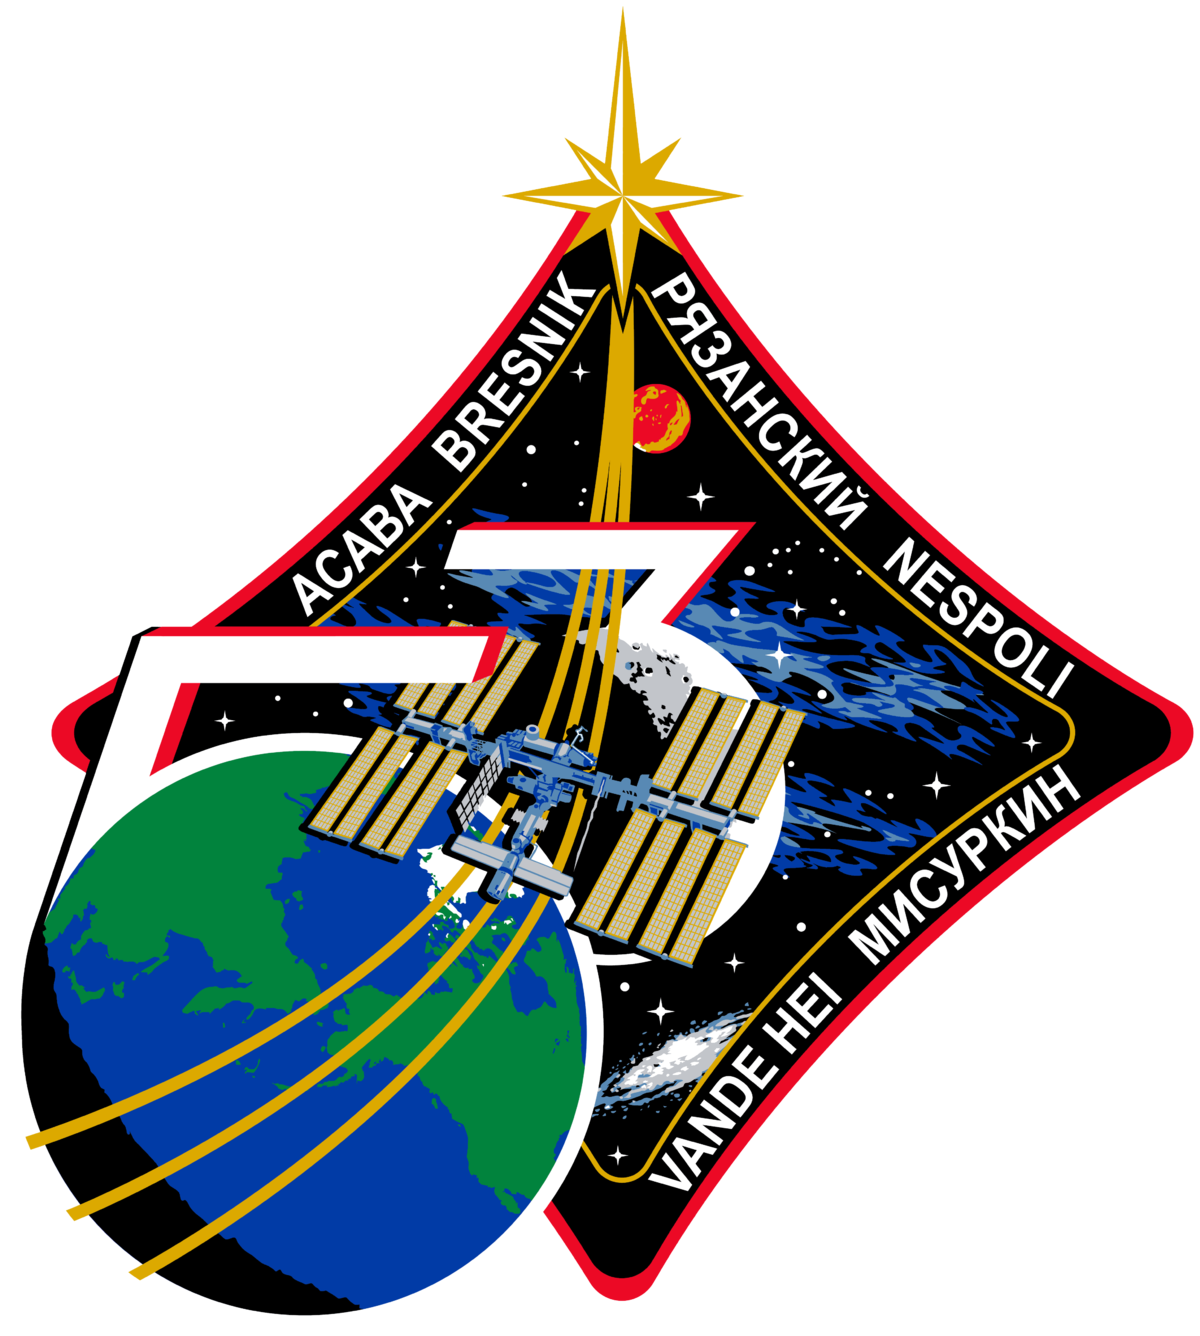 Orbiter ch space news. Smoke clipart smoke plume graphic free download